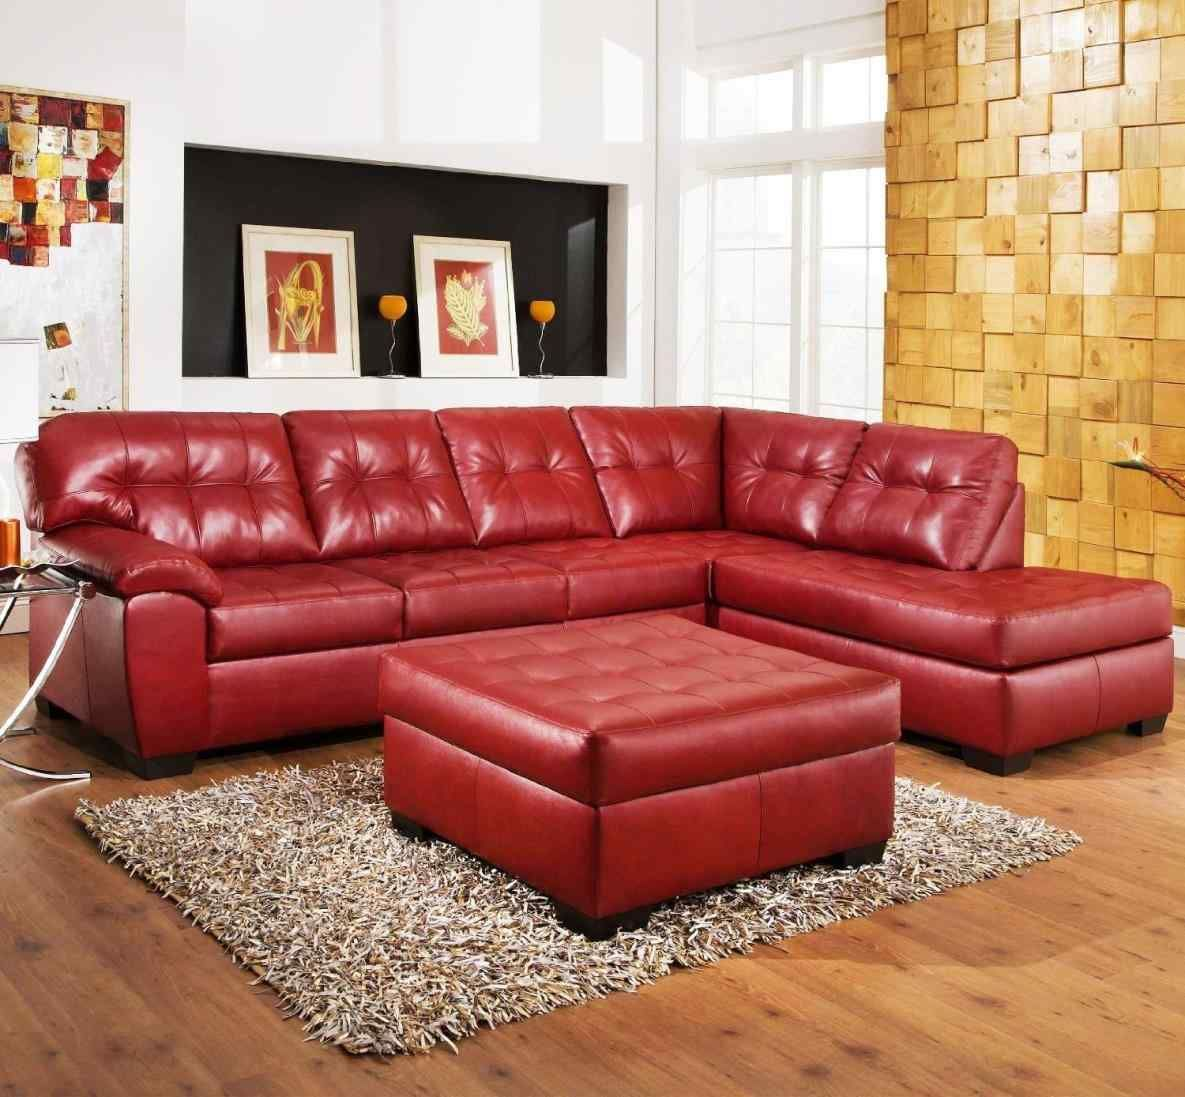 Stupendous Prices Springfield Rooms To Go Sleeper Sofa Sale Furniture Ncnpc Chair Design For Home Ncnpcorg